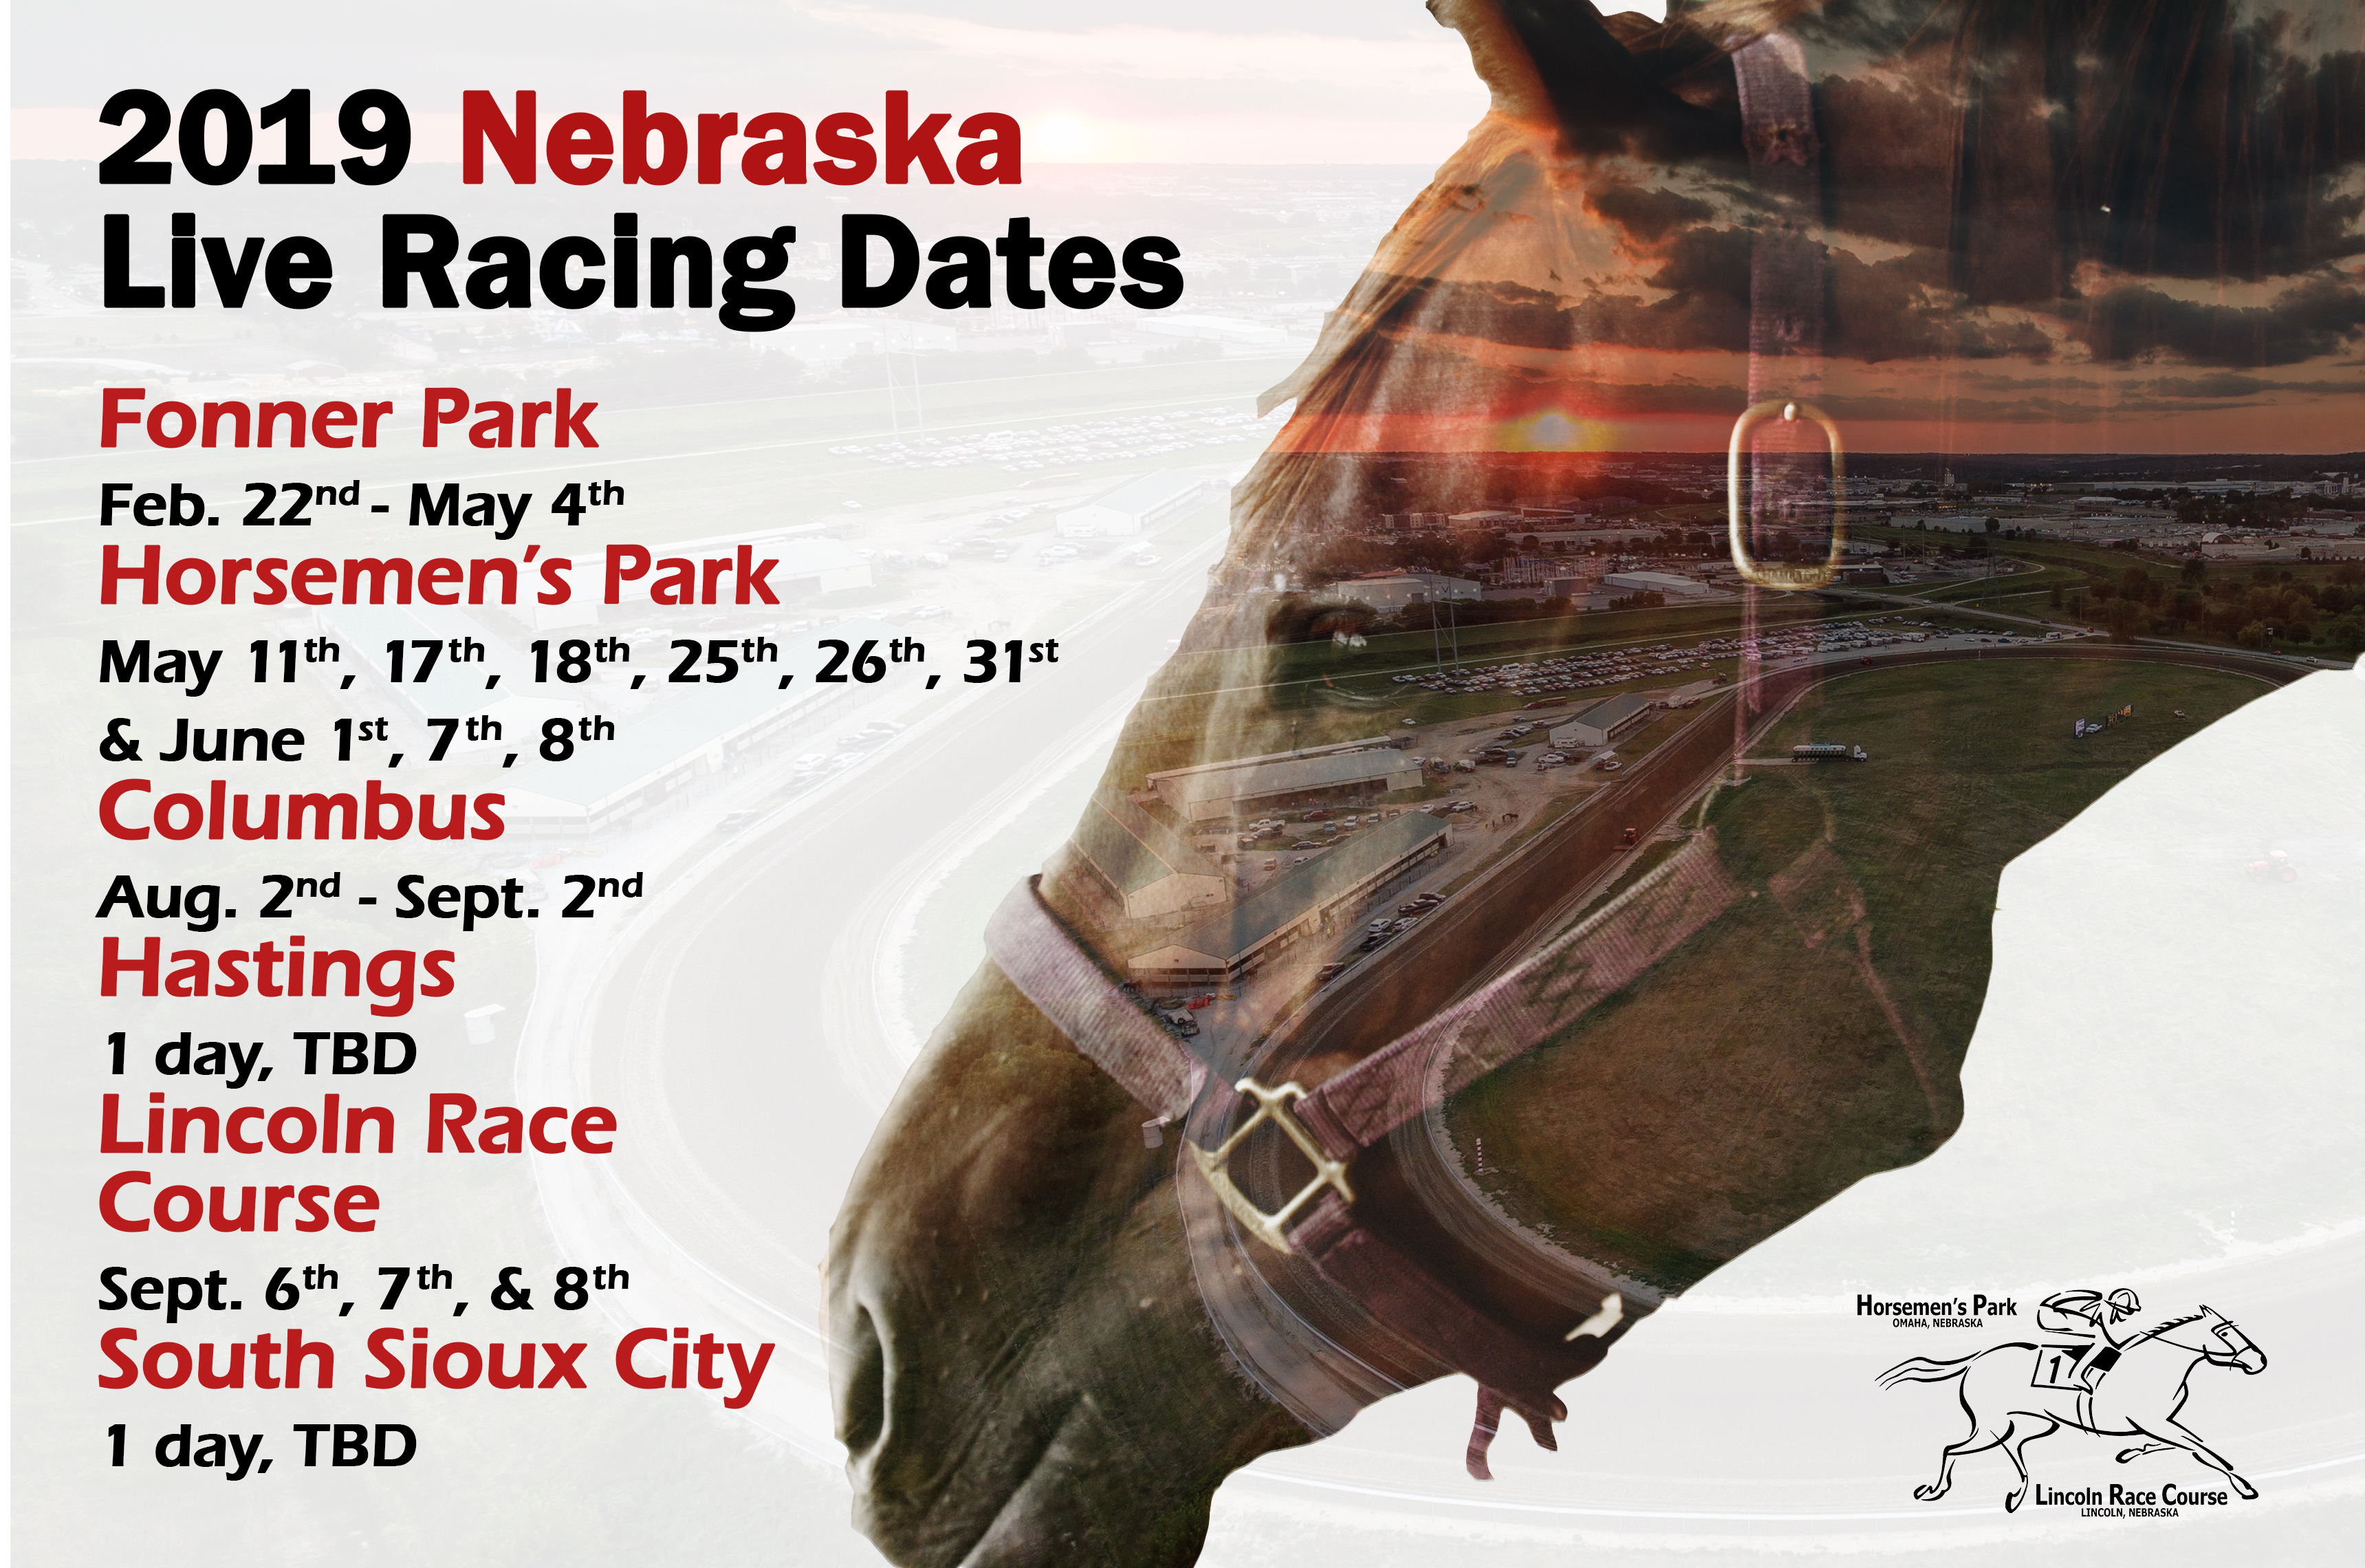 Nebraska Live Racing Dates landscape 2019.jpg